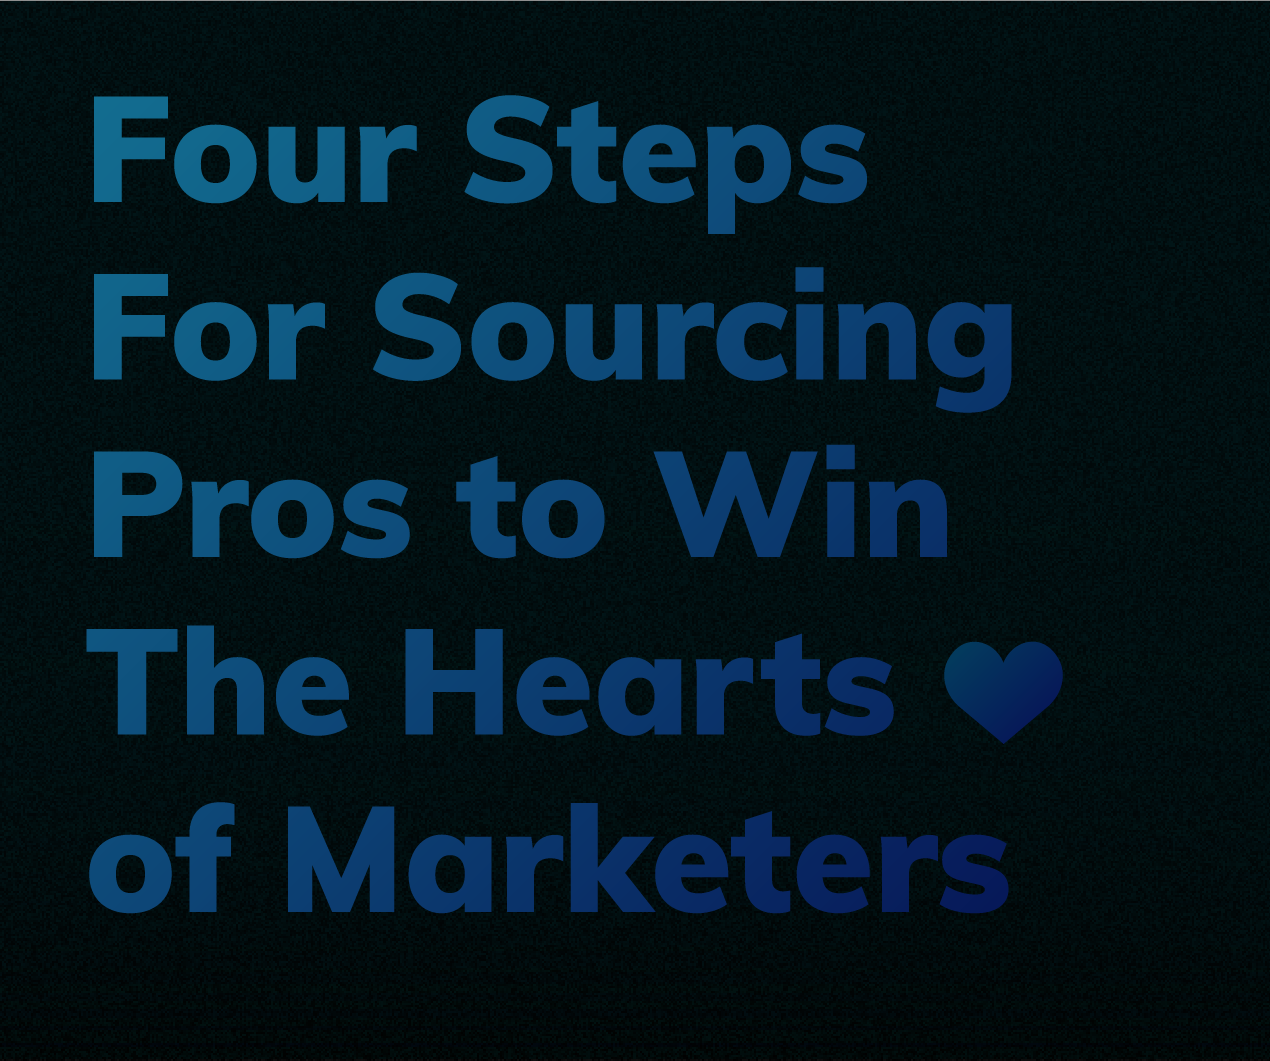 Four Steps For Sourcing Pros To Win The Hearts Of Marketers